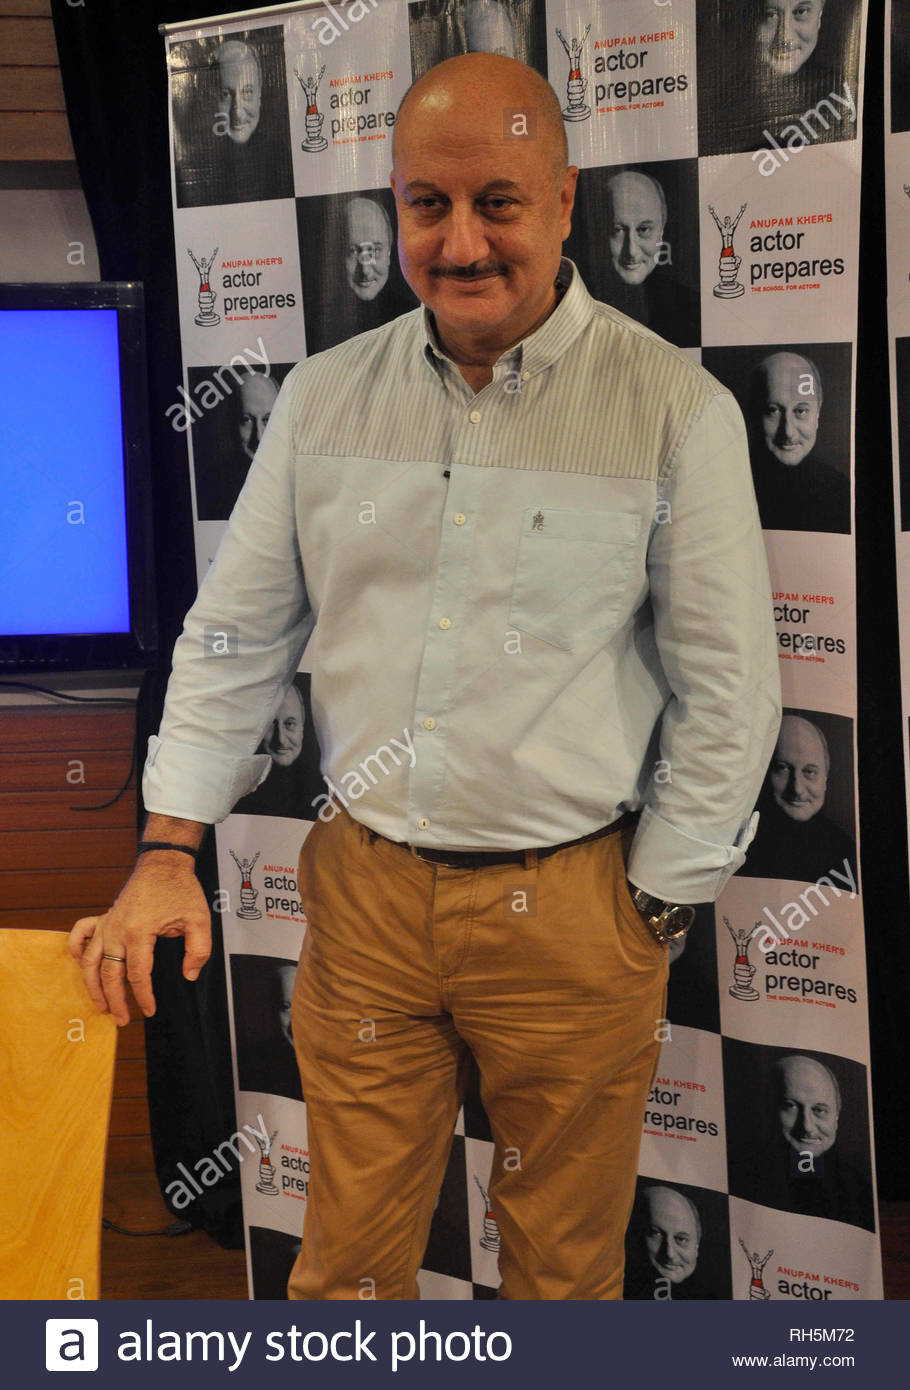 Bollywood actor Anupam Kher during a Master Class lecture with students of Actors Prepares Acting School in Mumbai, India on July 18, 2013. (Deven Lad) - Stock Image